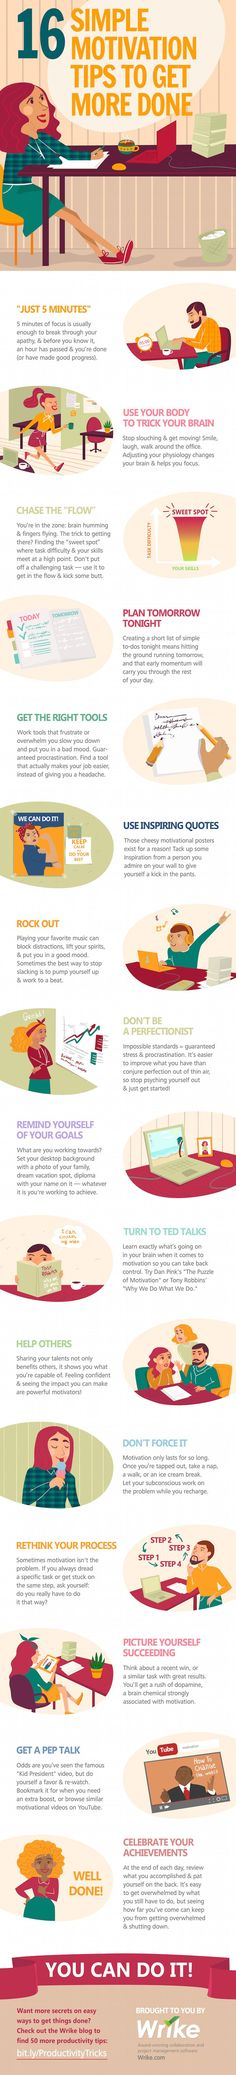 16 Simple Motivation Tips to Get More Done [by Wrike -- via Tipsographic]…